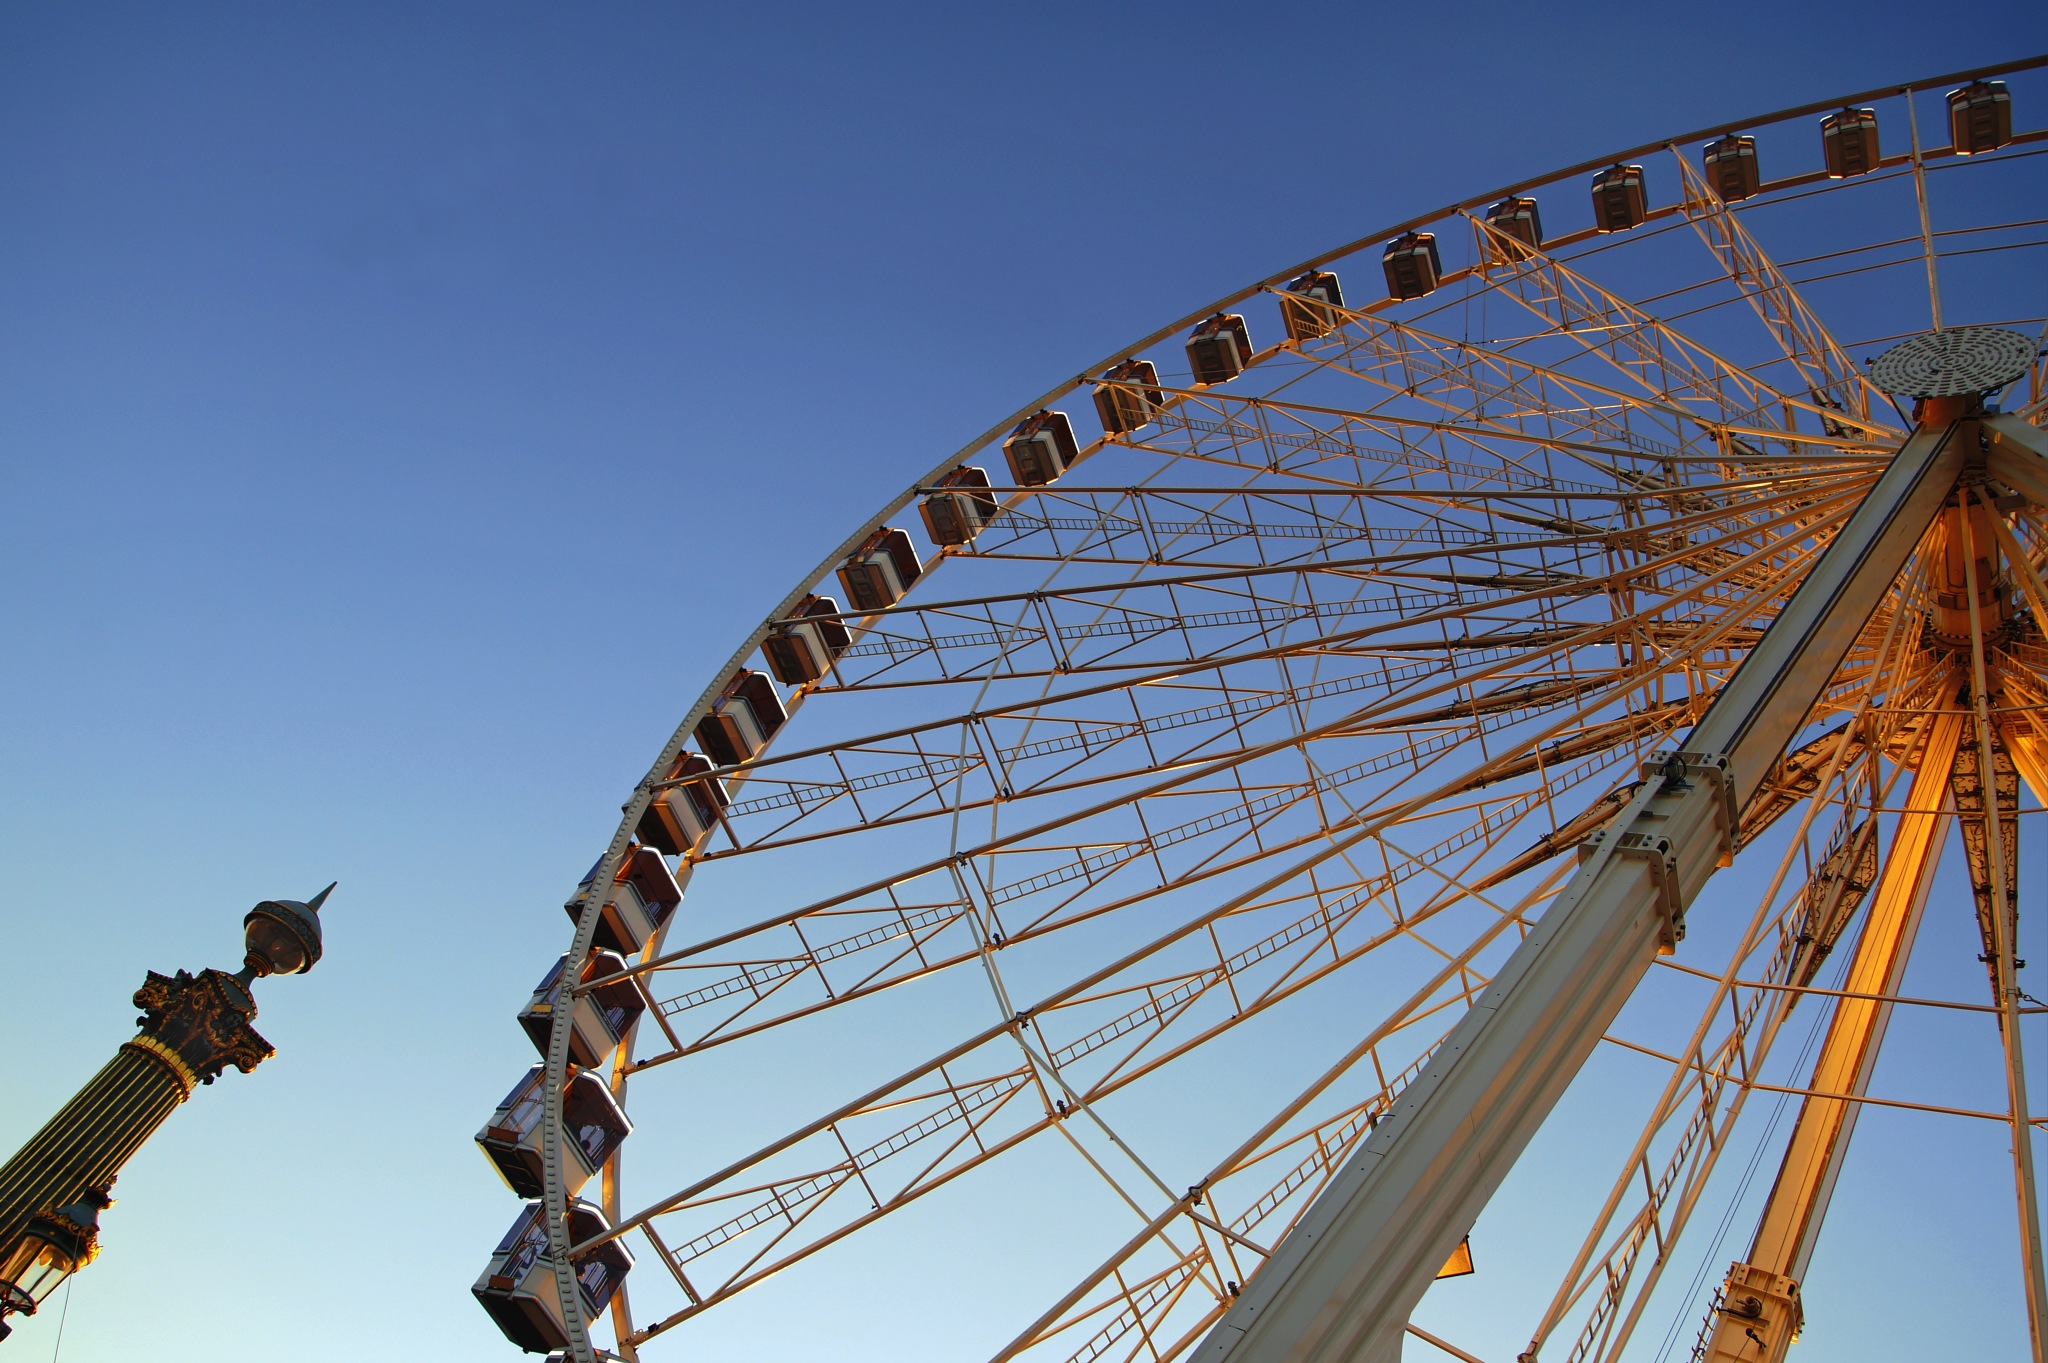 Roue - Wheel by claire lafontaine